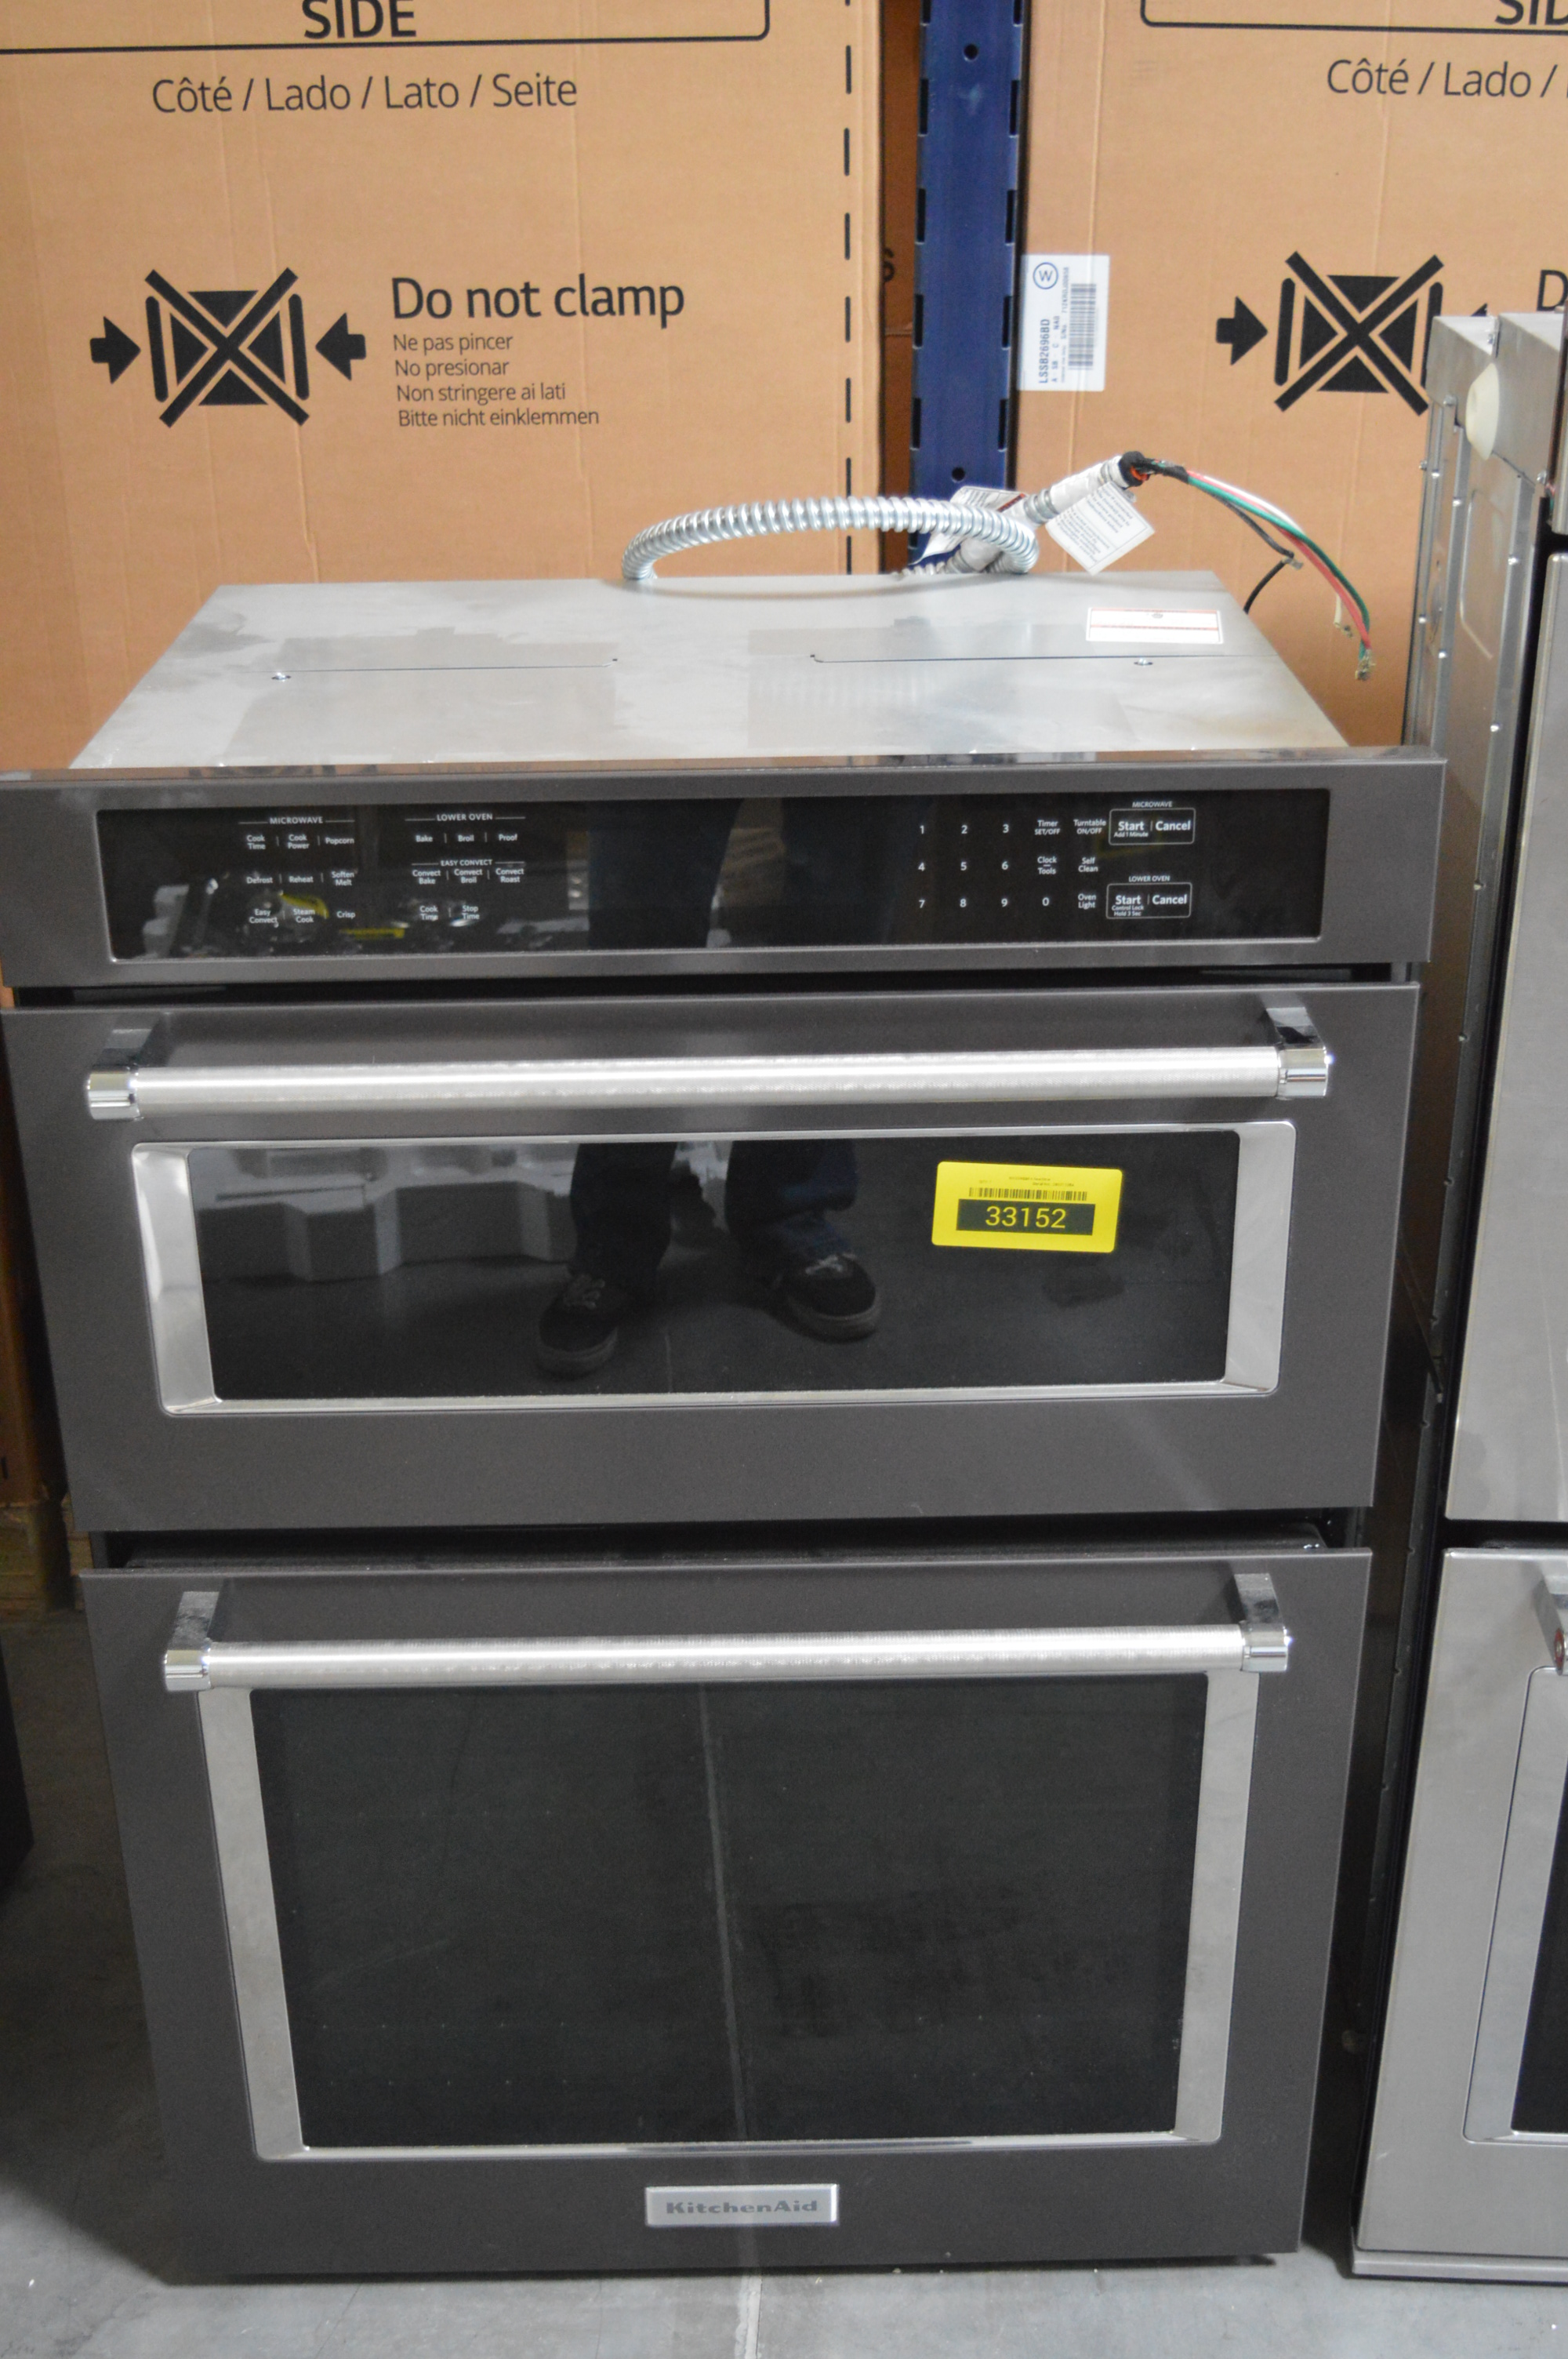 KitchenAid KOCE500EBS 30